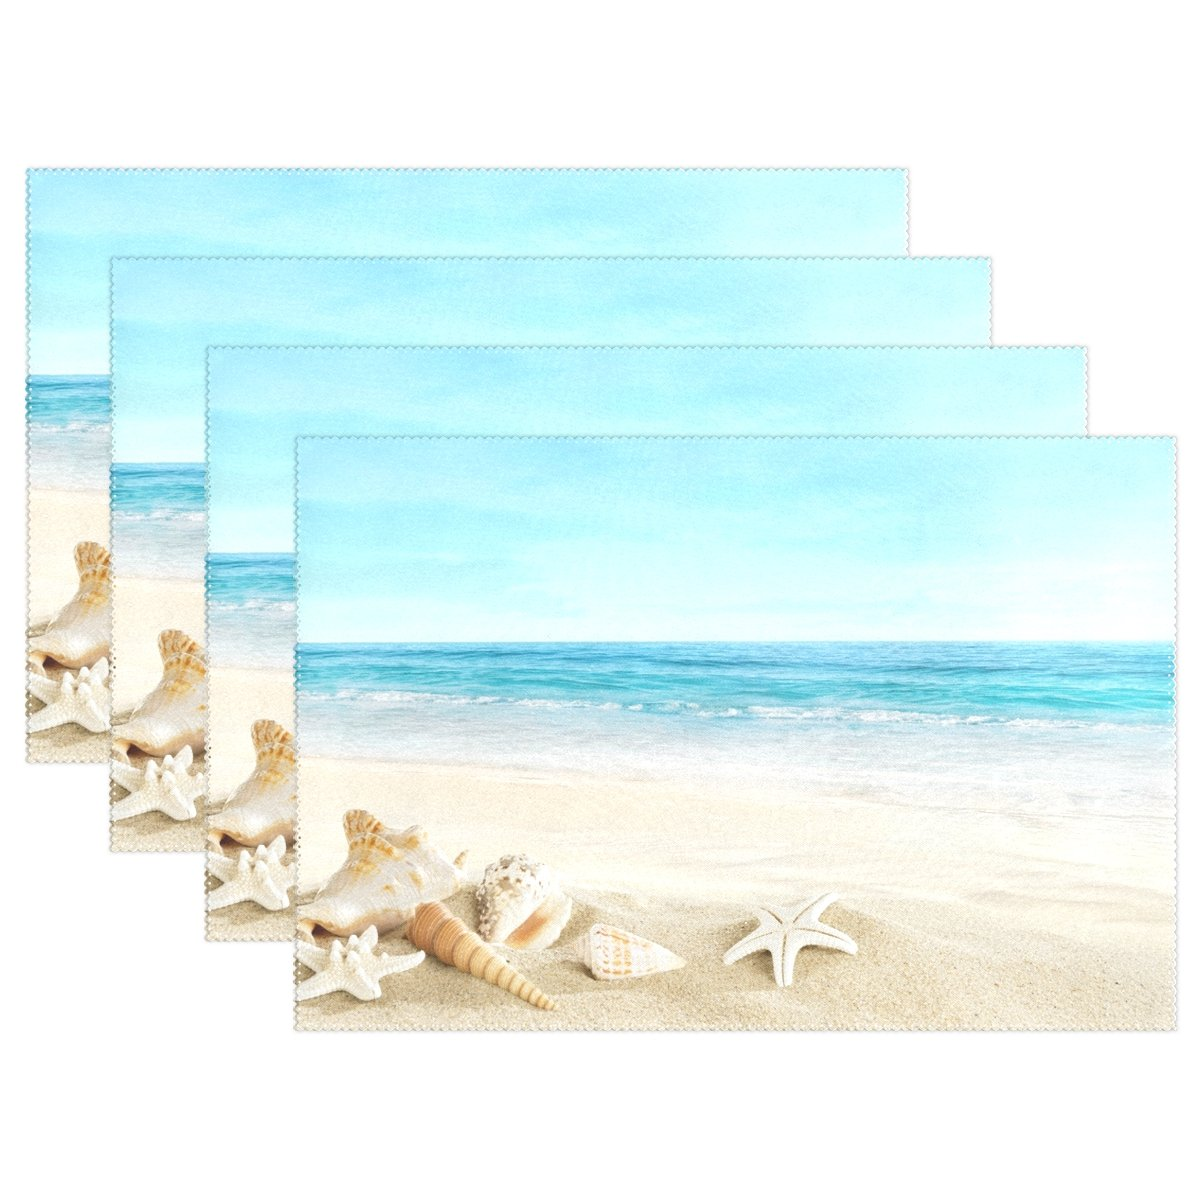 Polyester Tablemat Place Mat for Kitchen Dining Room 1 Piece LIANCHENYI Summer Shell On Beach Heat-resistant Placemats